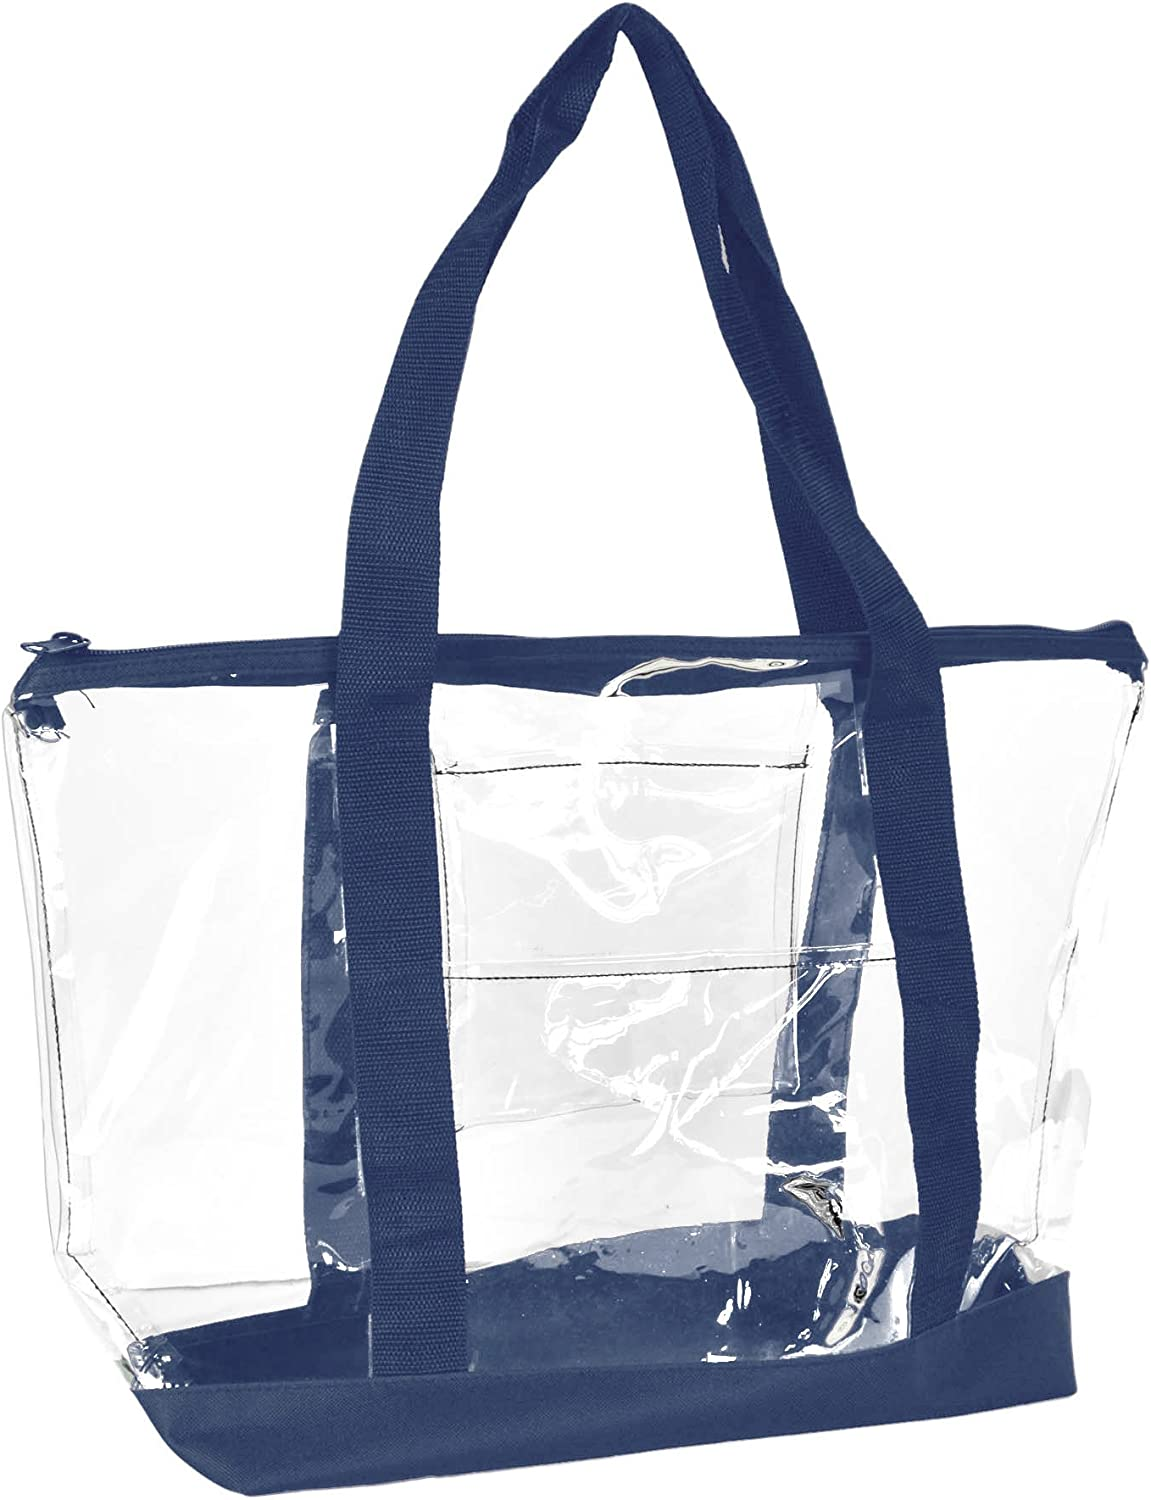 DALIX Clear Shopping Bag Security Work Tote Shoulder Bag Womens Handbag